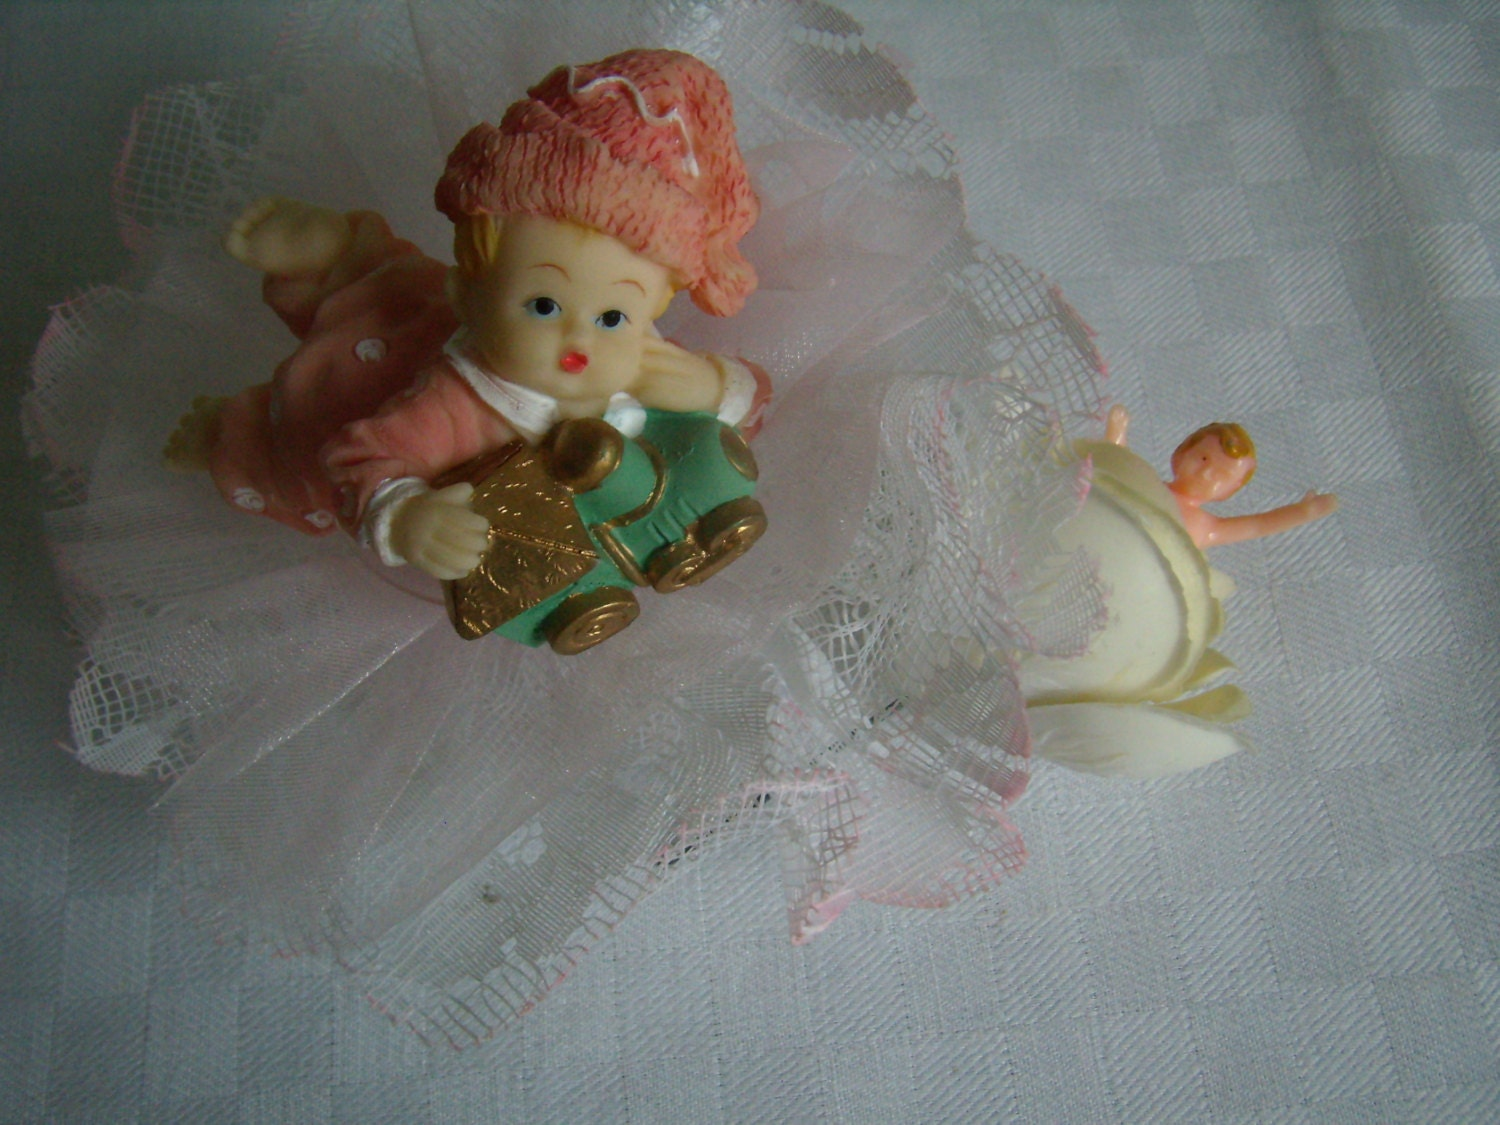 Cake Decor Figurines : Decor cake birth Vintage pink Figurine girl collectible